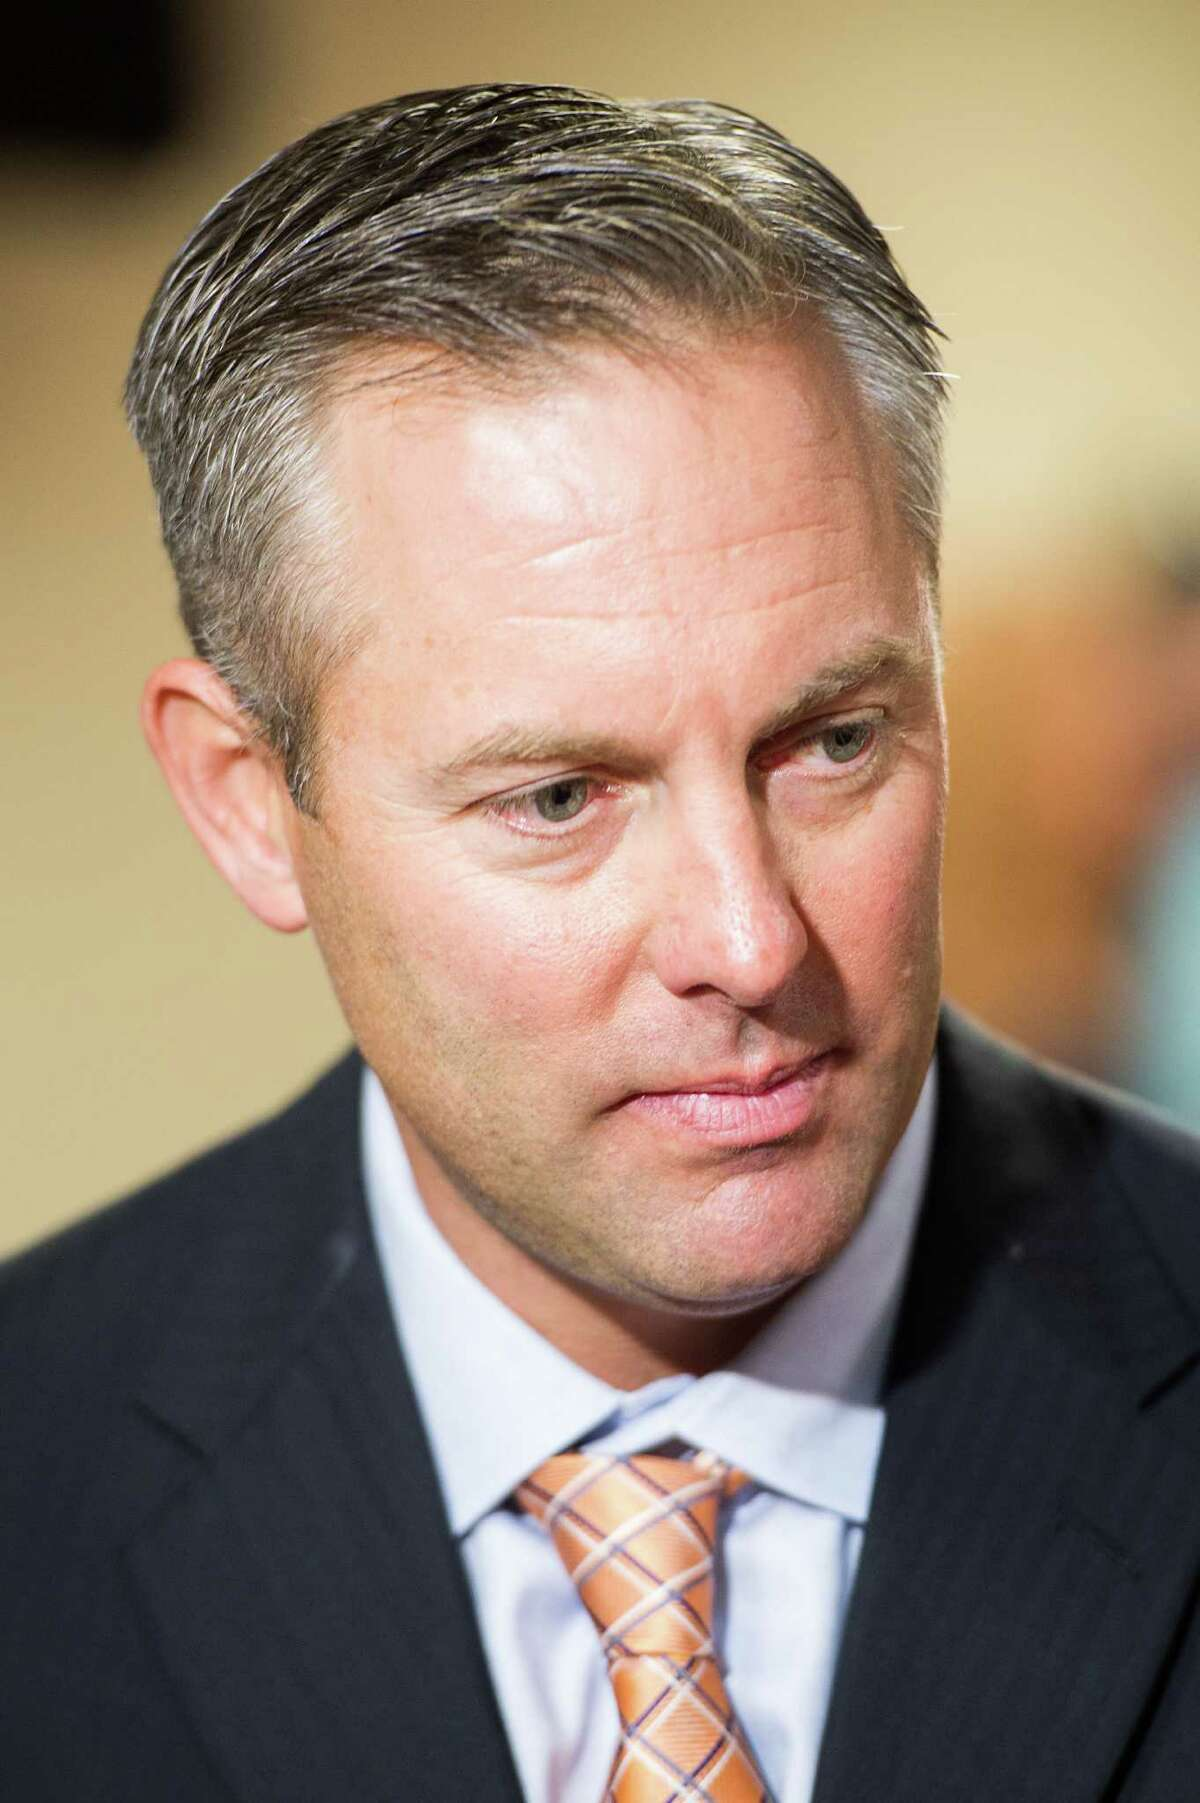 Reid Ryan addresses the media after being announced as the new Houston Astros president at Minute Maid Park on Friday, May 17, 2013, in Houston. Ryan, the eldest son of Astros pitching great and current Texas Rangers executive Nolan Ryan, is the CEO of Ryan-Sanders, the owner of the Round Rock Express and Corpus Christi Hooks, a pair of successful minor league franchises. ( Smiley N. Pool / Houston Chronicle )